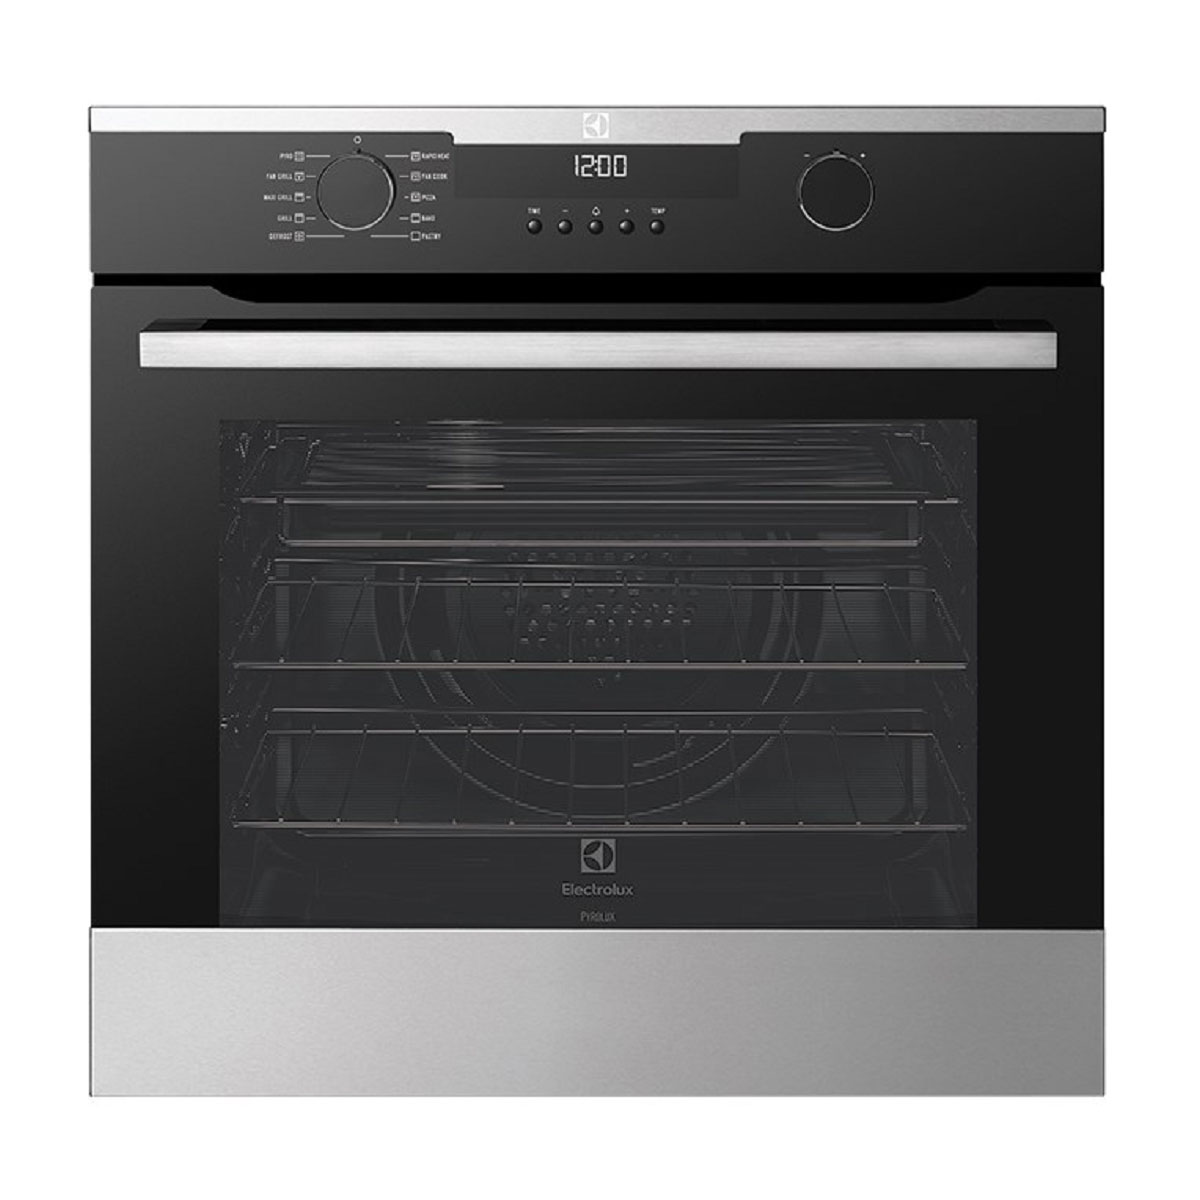 Electrolux EVEP604SC Electric Wall Oven 27023